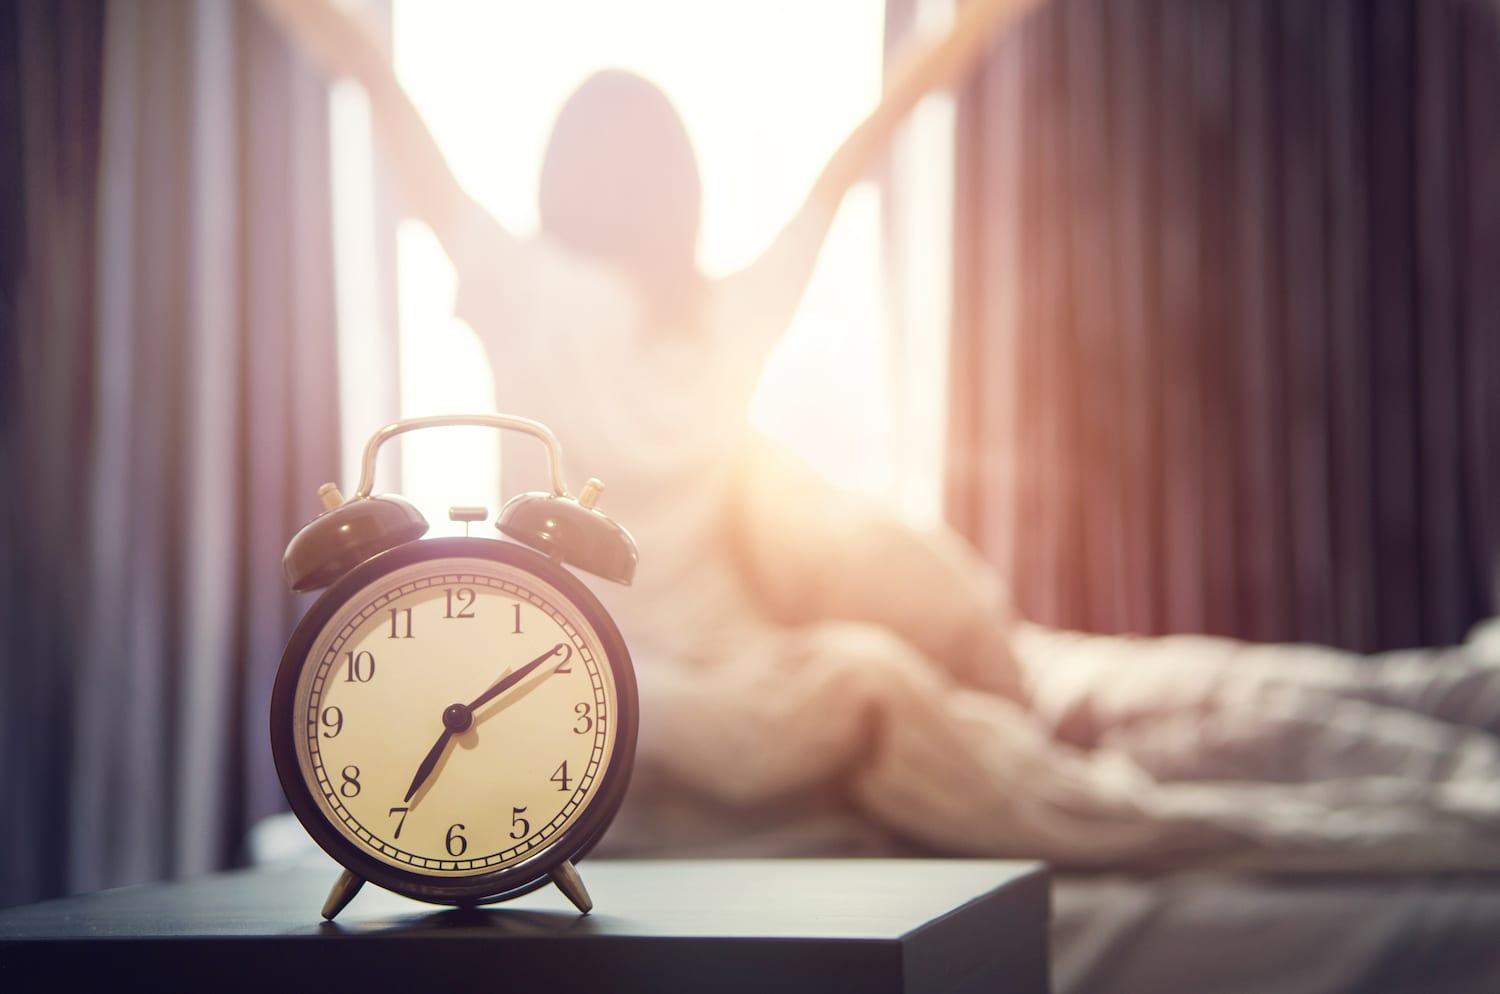 Why Daylight Saving Time Is More Difficult for Night Owls